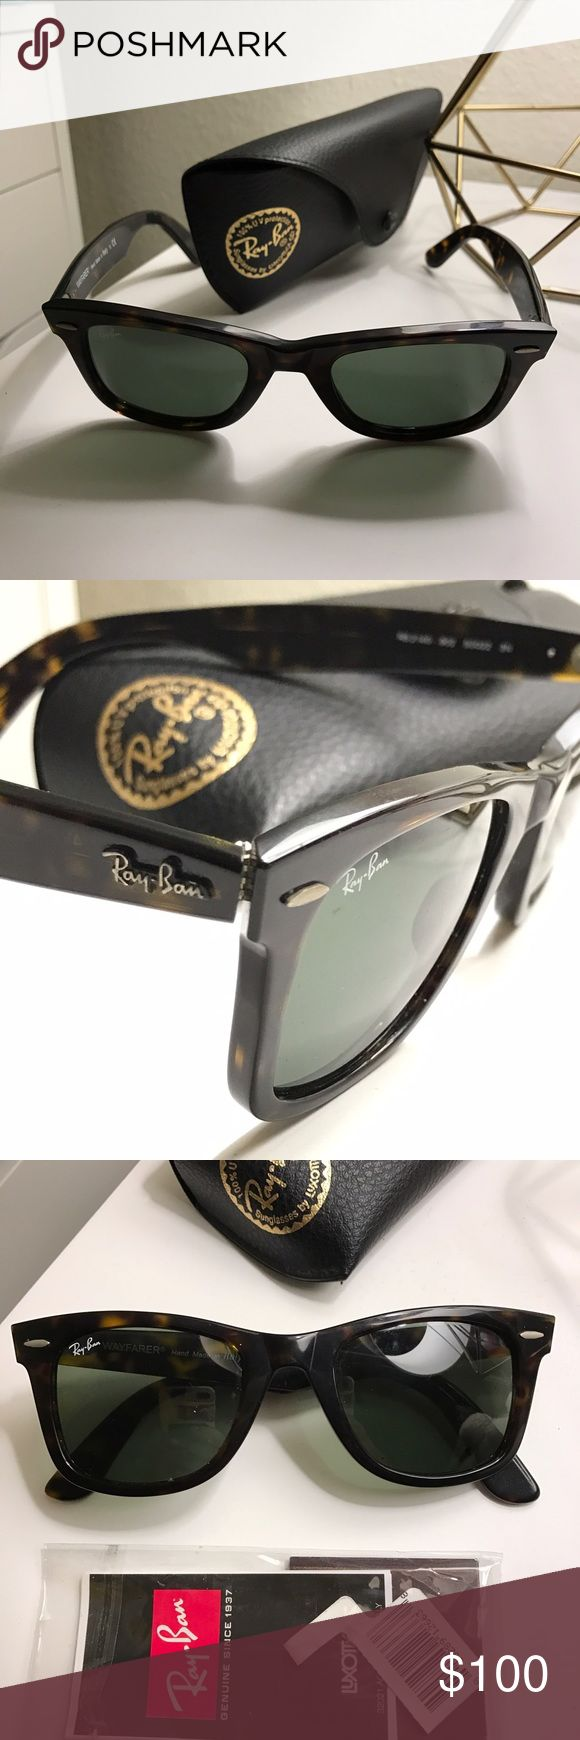 Ray-Ban Original Wayfarer Tortoise Sunglasses Ray-Ban Original Wayfarer Classic sunglasses in Tortoise. Men's style, not polarized. Purchased from Academy and is in EUC. Includes original lens case, price tag, and documents. Ray-Ban Accessories Sunglasses